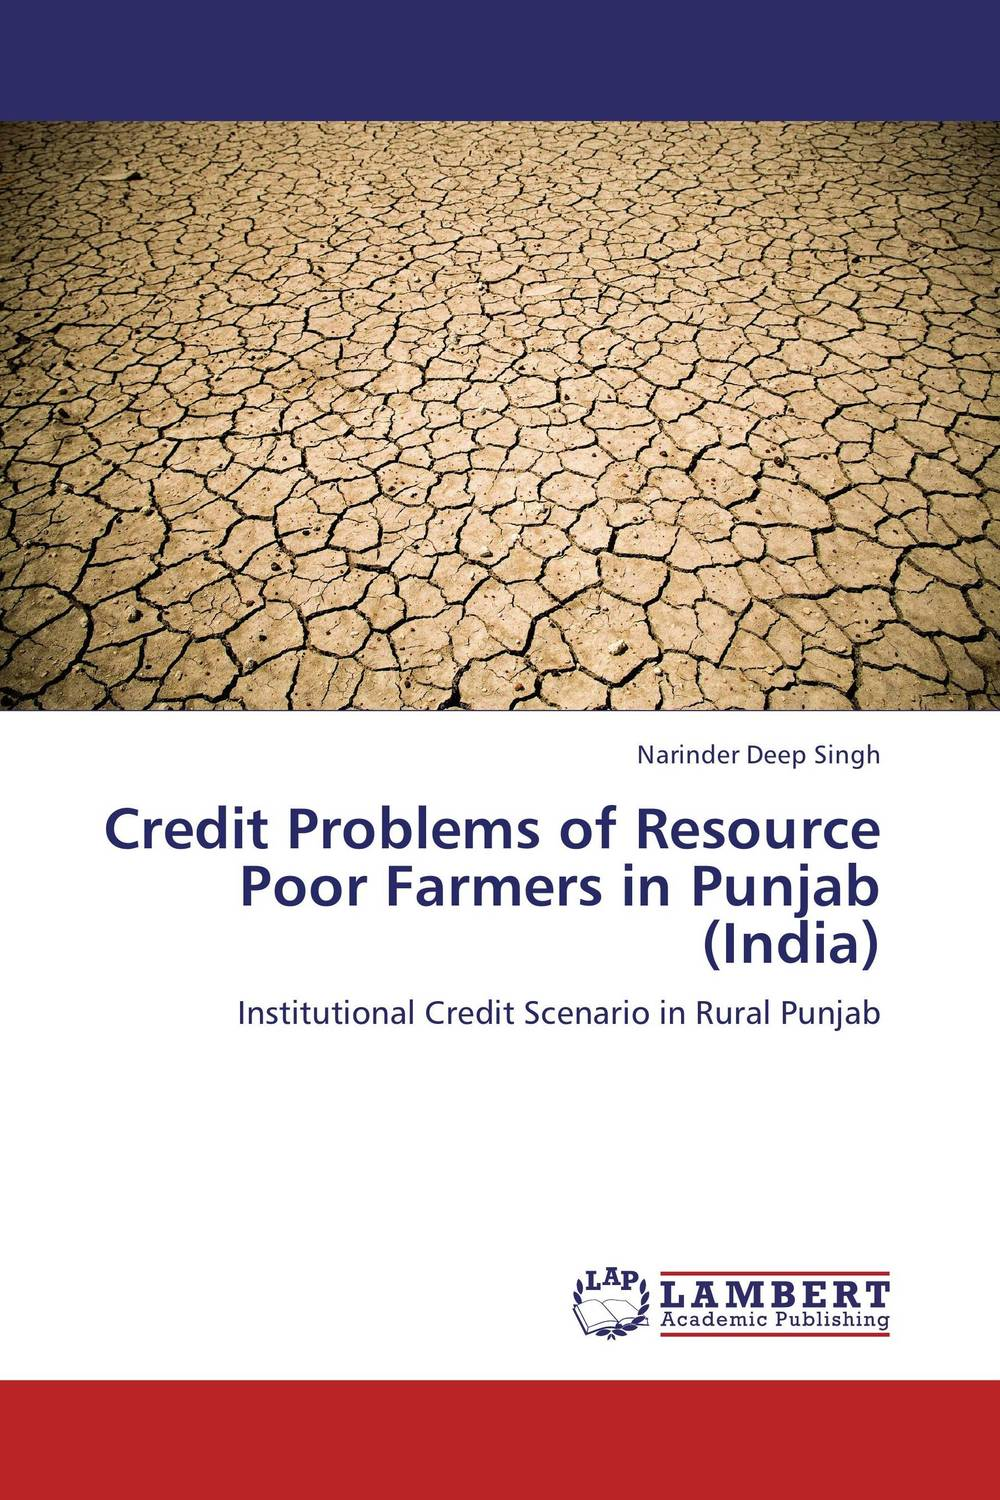 Credit Problems of Resource Poor Farmers in Punjab (India) community resilience of village udekaran punjab india